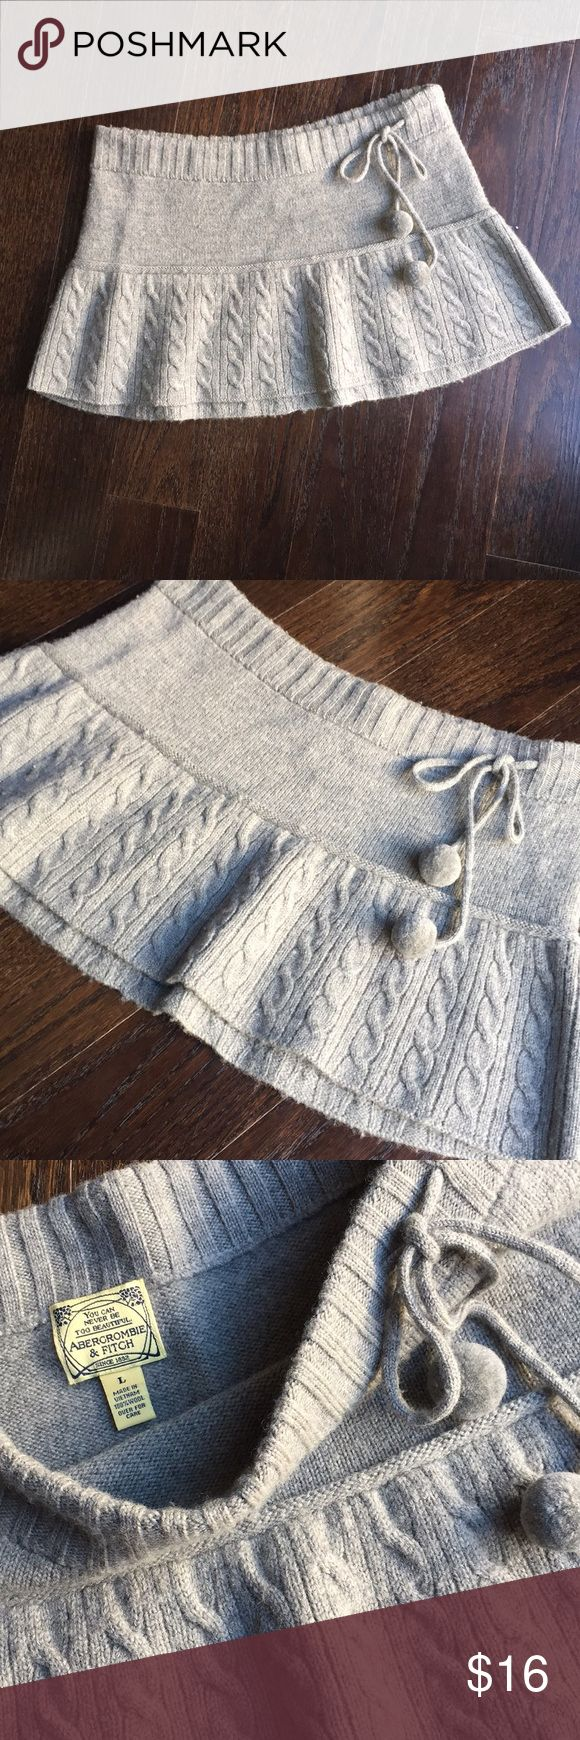 """EUC Abercrombie and Fitch 100% Wool skirt sz. L Adorable grey cable knit Wool skirt Barely worn. No damage or stains. Slightly stretchy with drawstring [poms]  Measures 15"""" across the waist [laid flat] & length is 11.5"""" in front 12.5"""" in back. Abercrombie & Fitch Skirts Circle & Skater"""